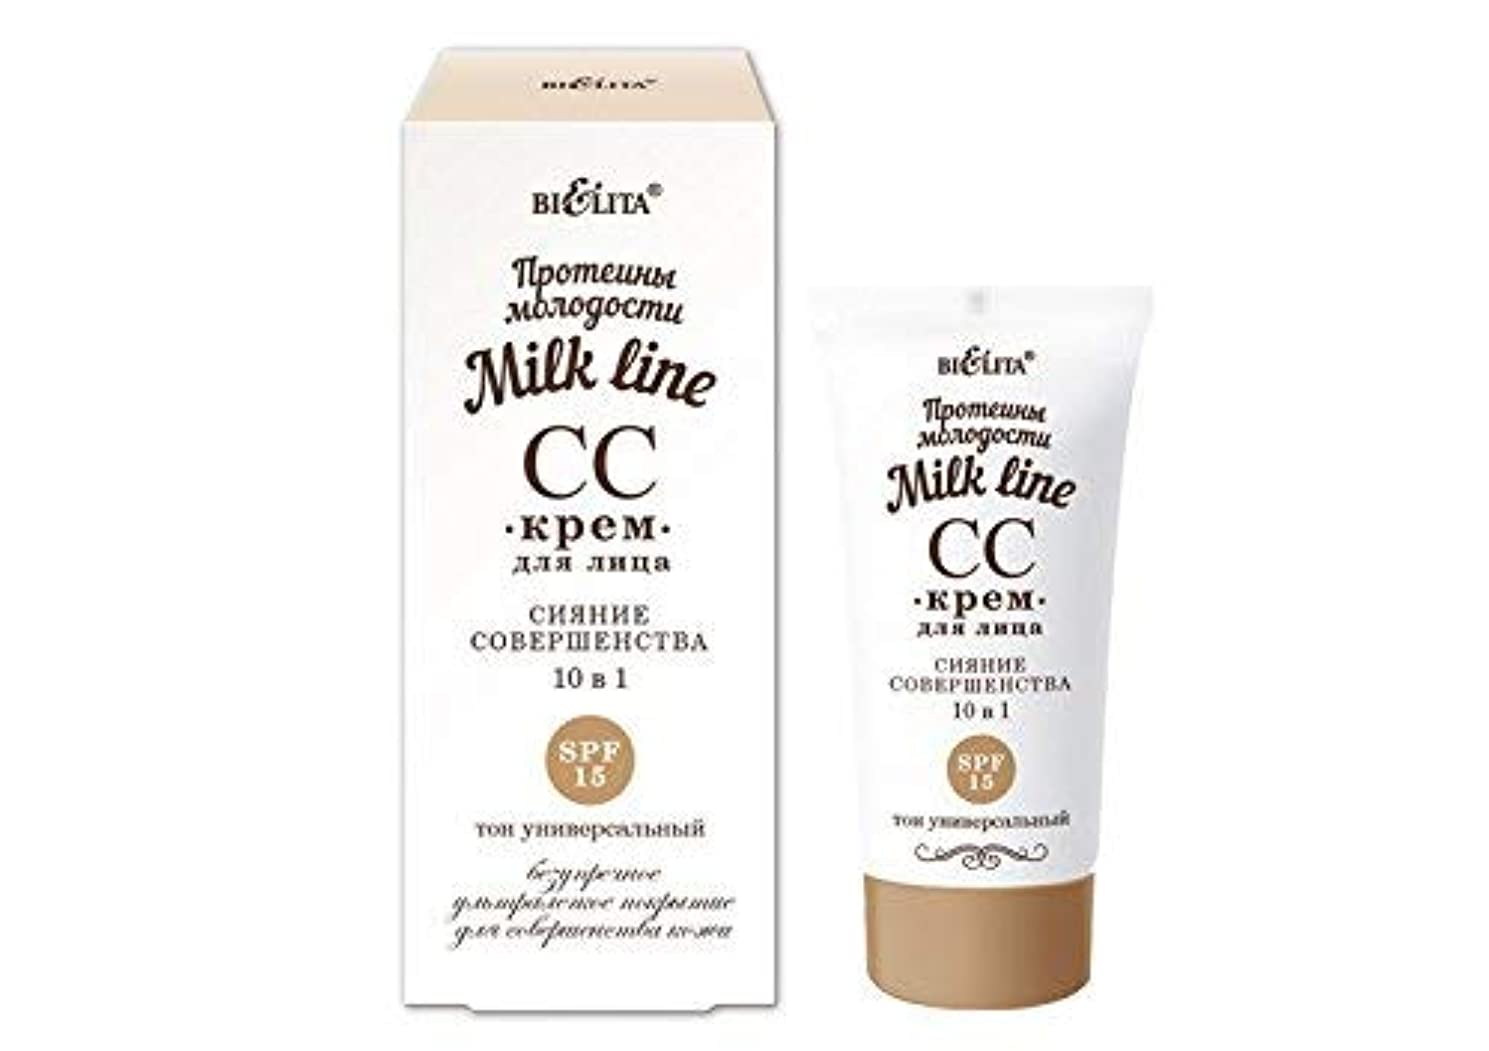 オフセットコンピューターを使用するくつろぐCC Cream,based on goat's milk Total Effects Tone Correcting Moisturizer with Sunscreen, Light to Medium 10 effects...